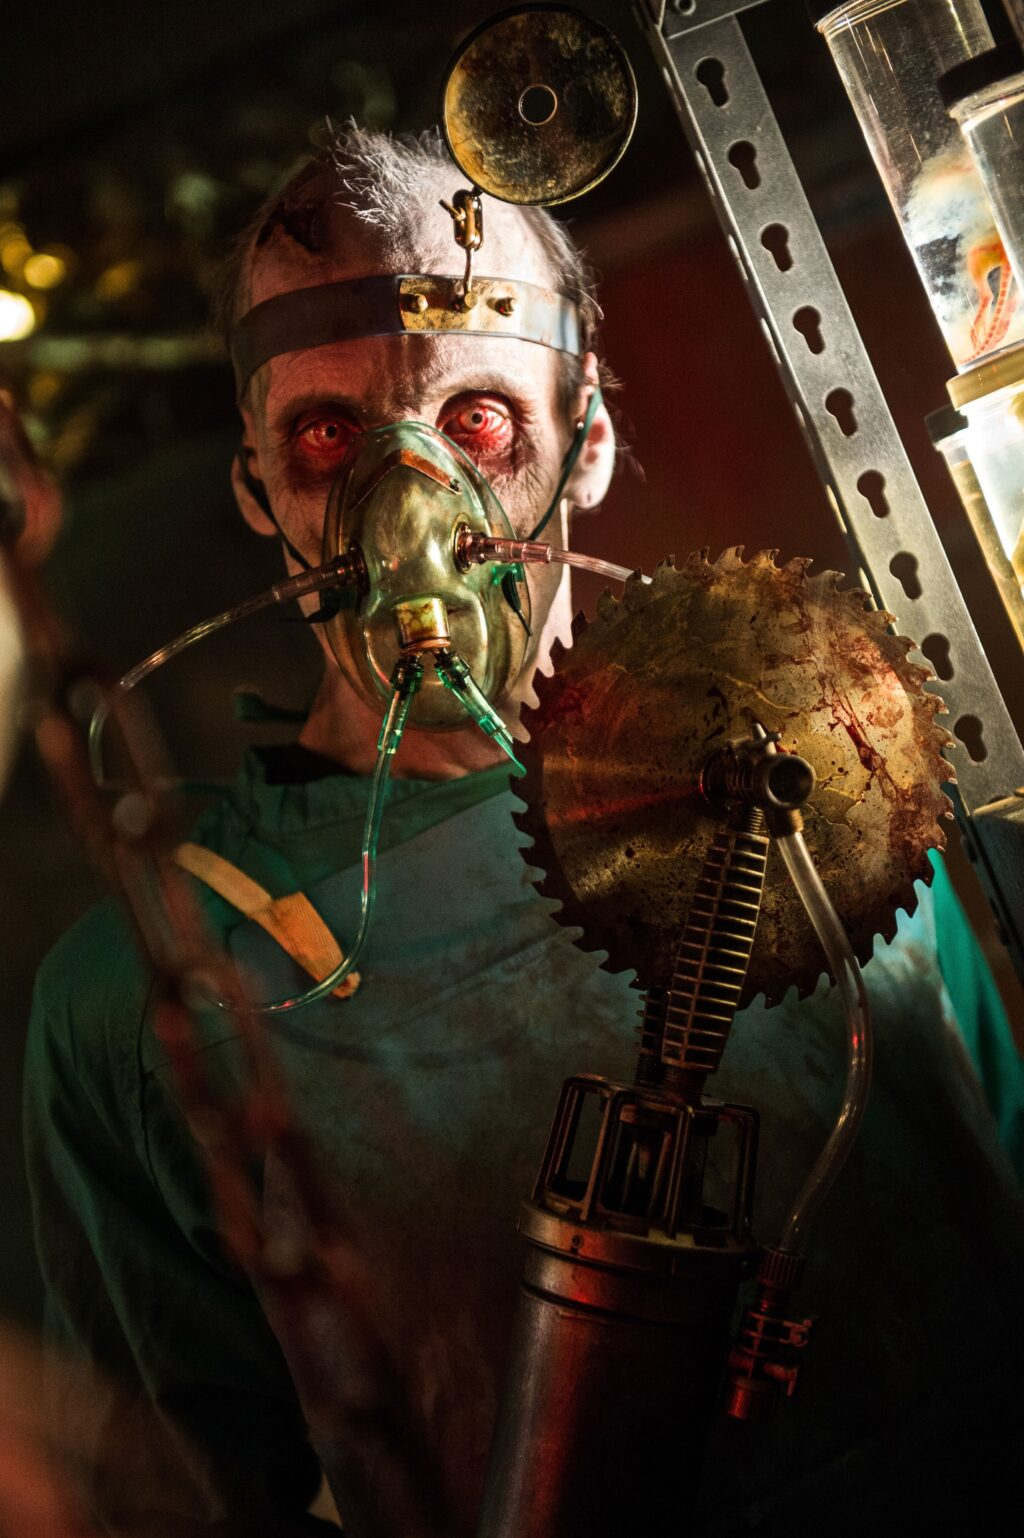 Doc2 1024x1538 - Trailer: Nevada's Largest In-Door Halloween Attraction FRIGHT DOME to Open Its Doors This October for FRIGHT RIDE